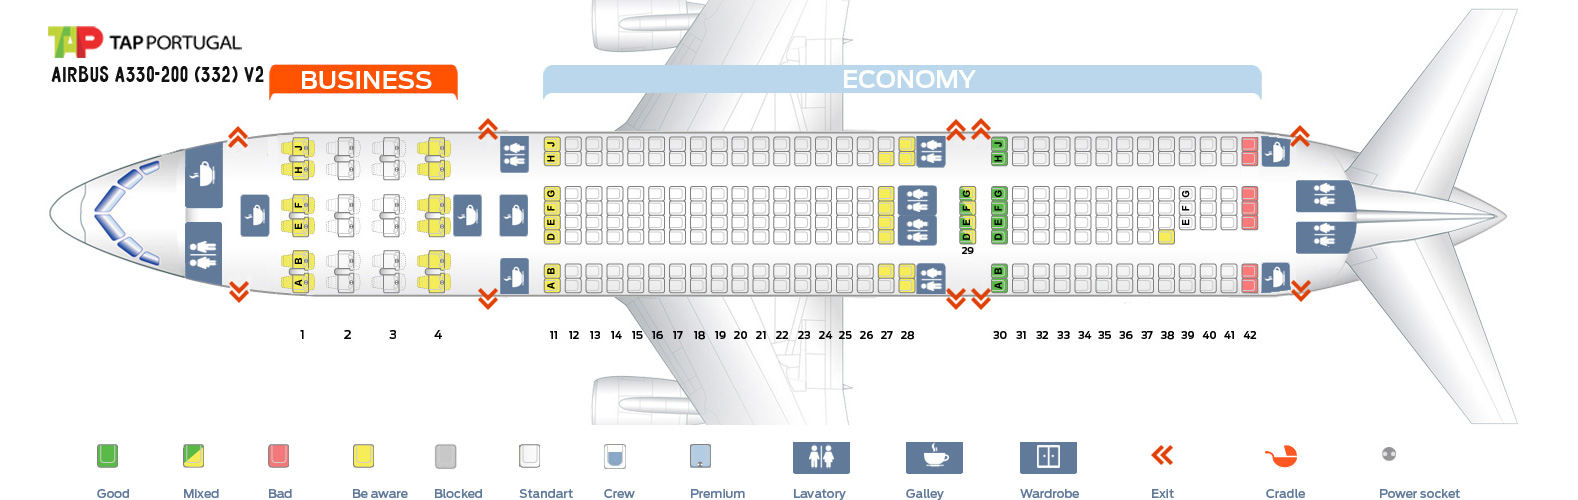 Seat Map Airbus A330-200 V2 Tap Portugal